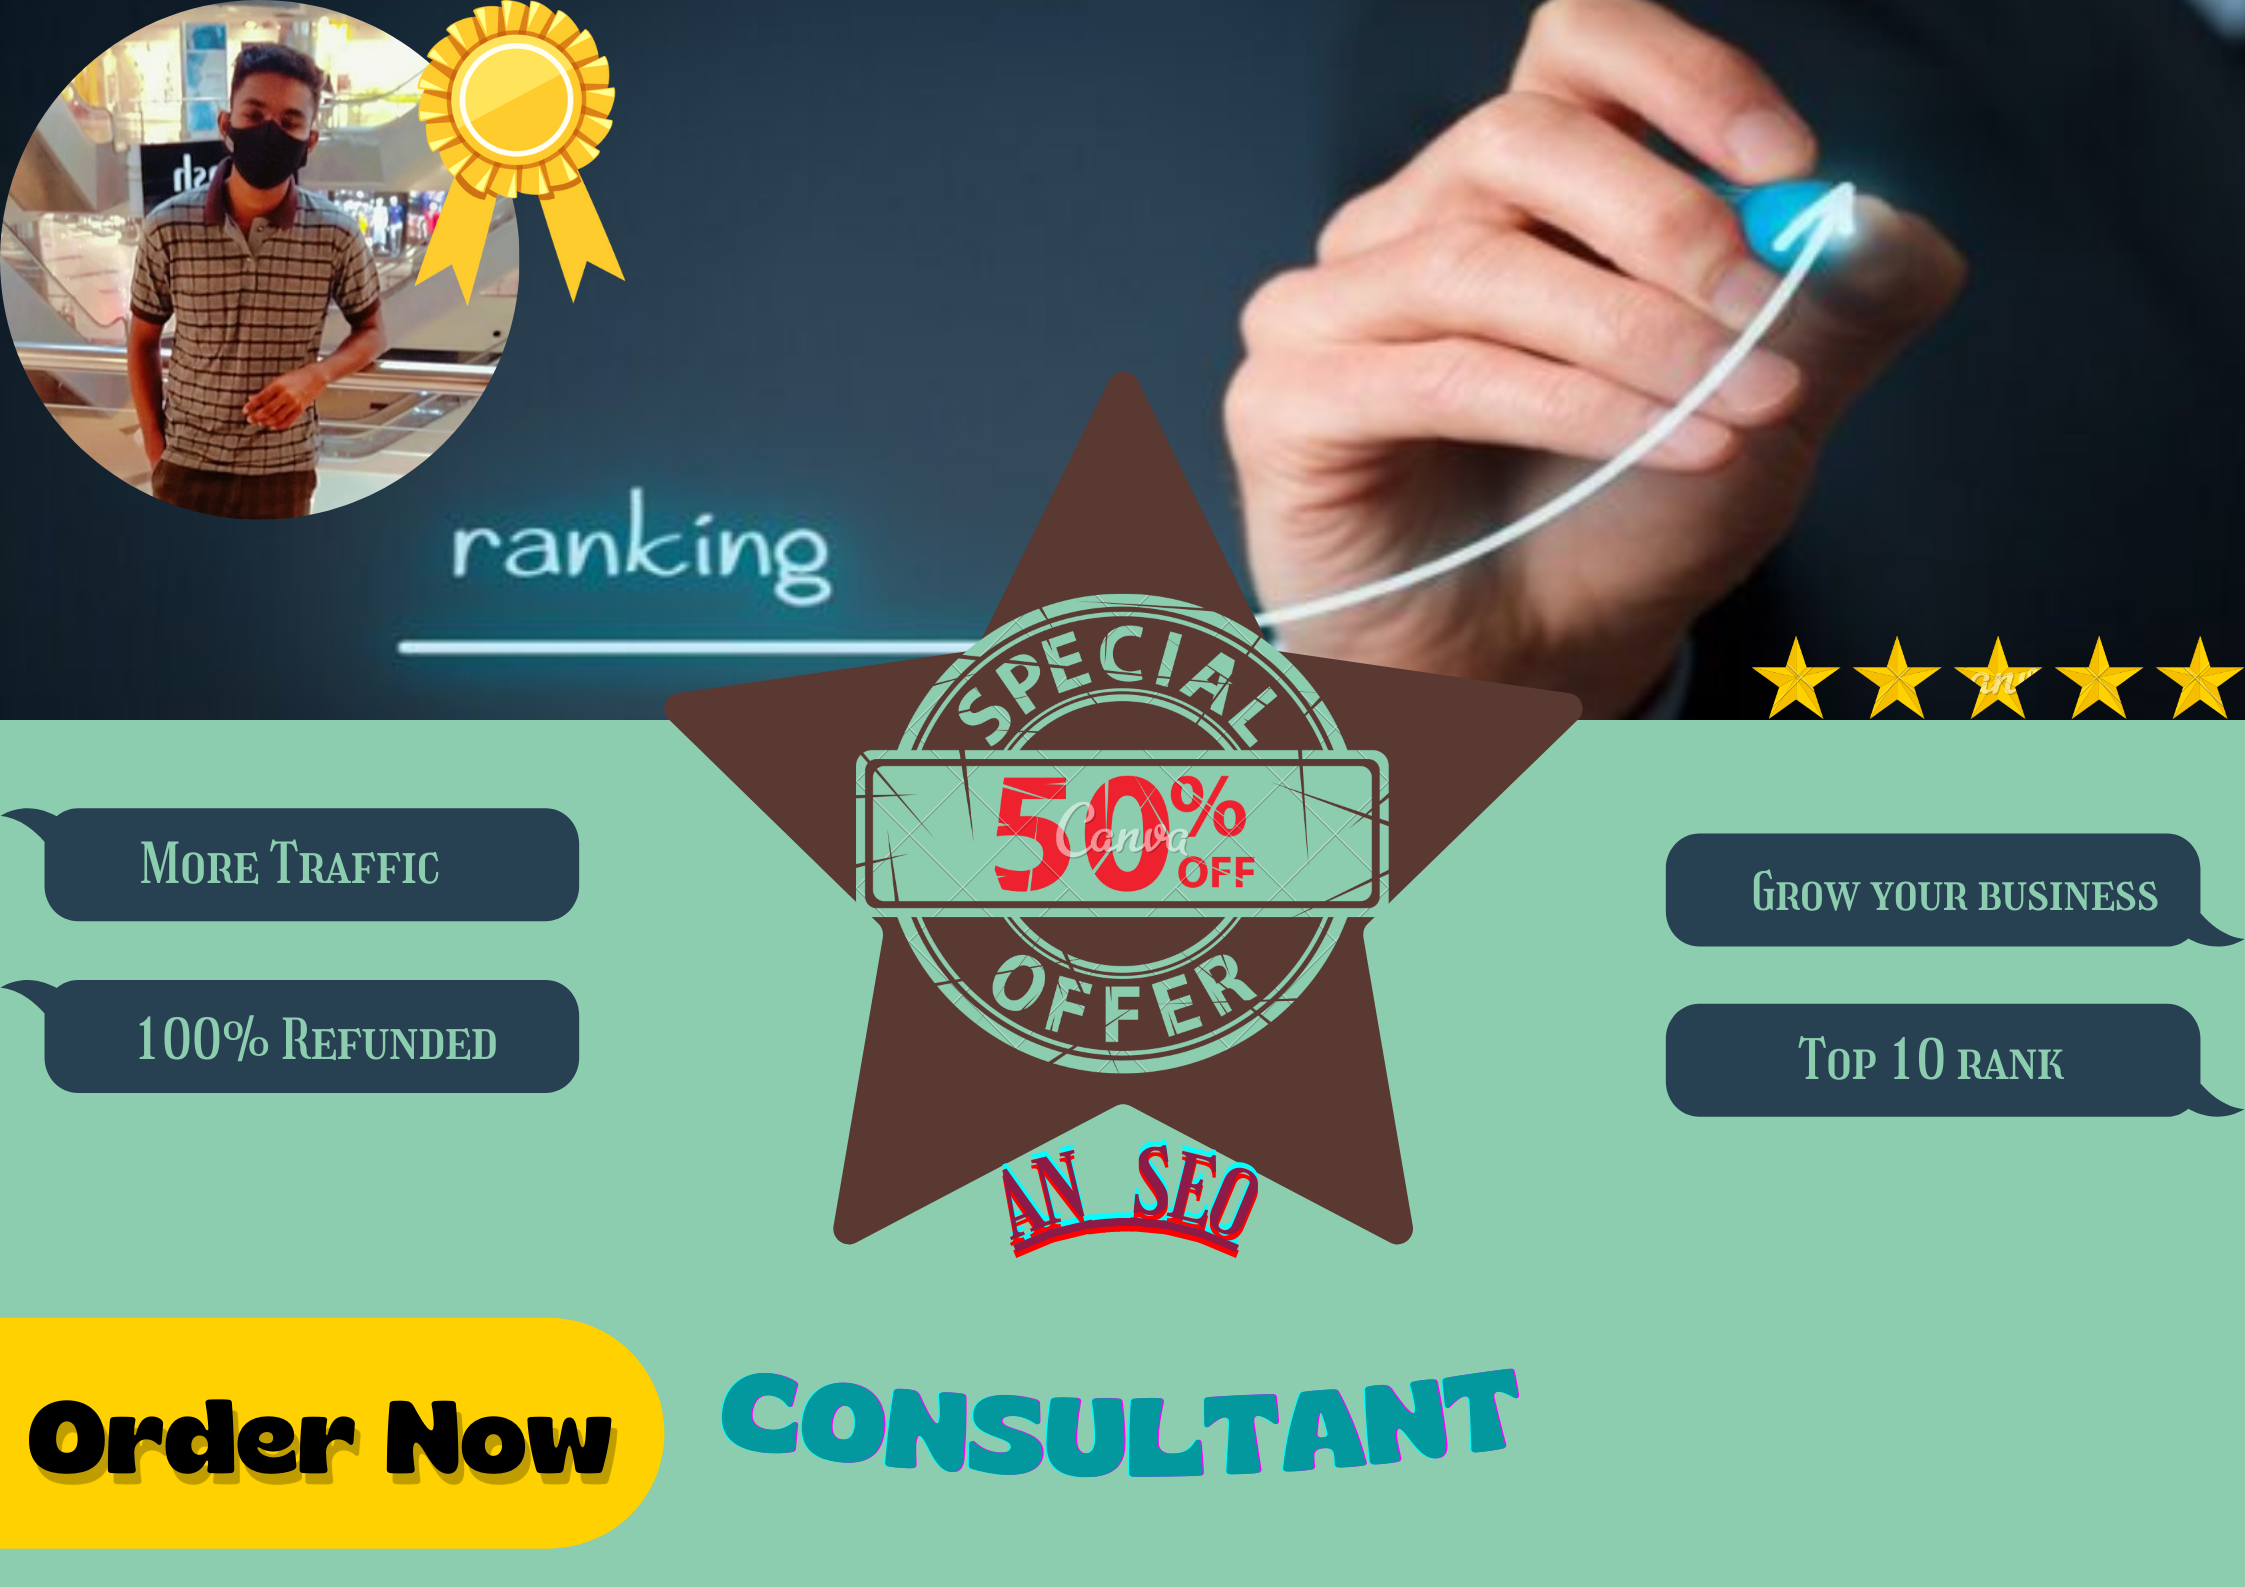 Hire me for grow up your business website by SEO